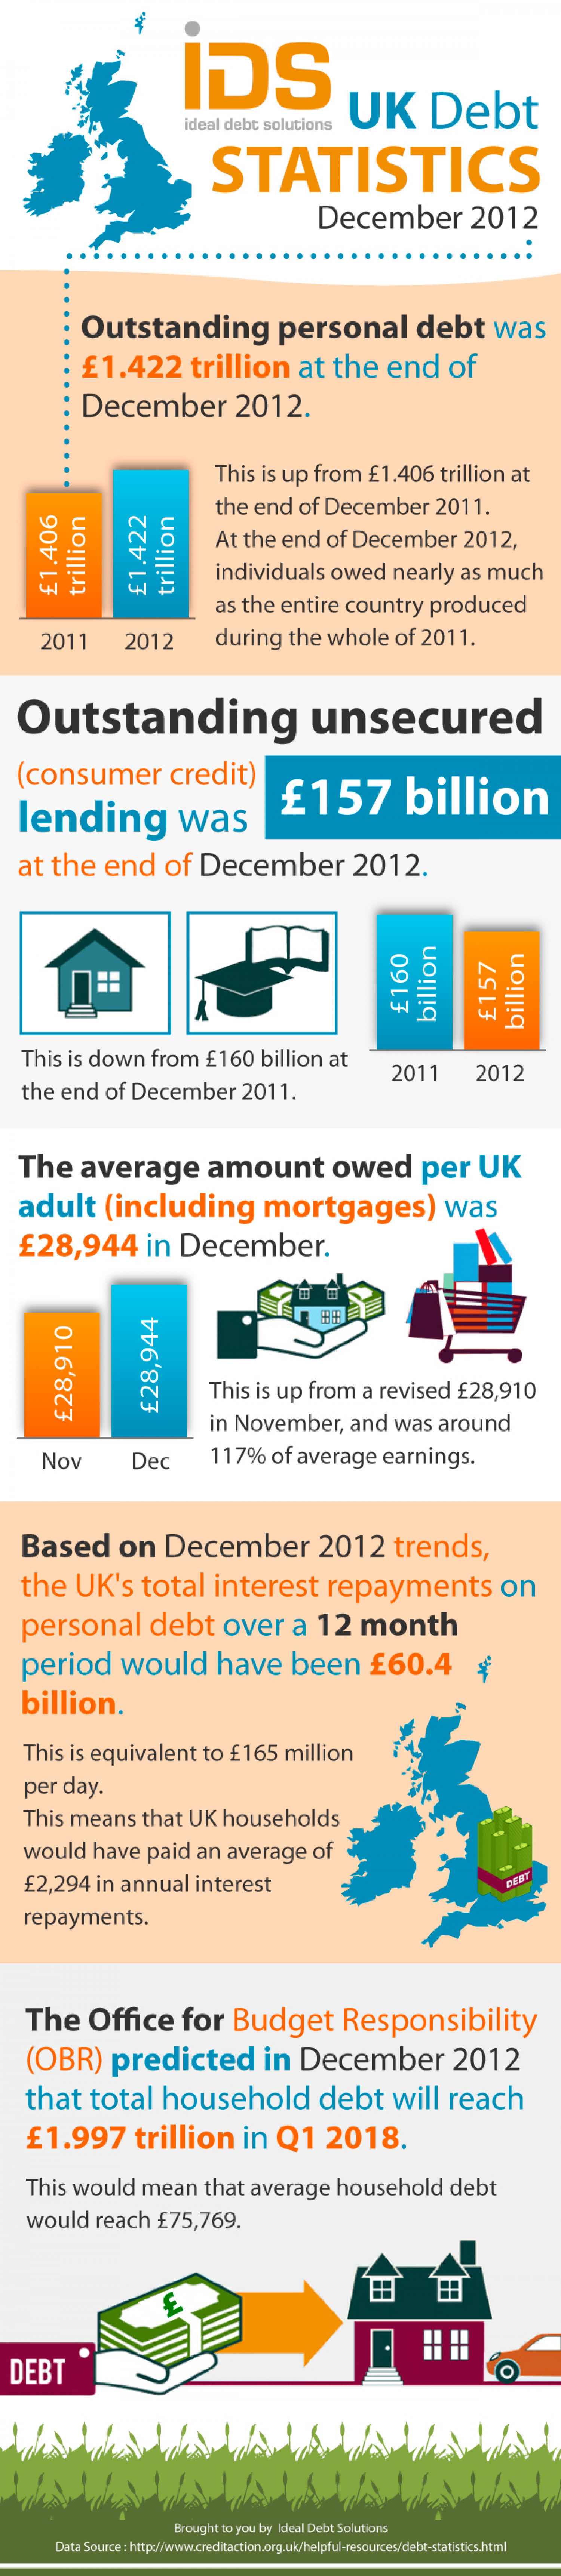 UK Debt Statistics - December 2012 Infographic